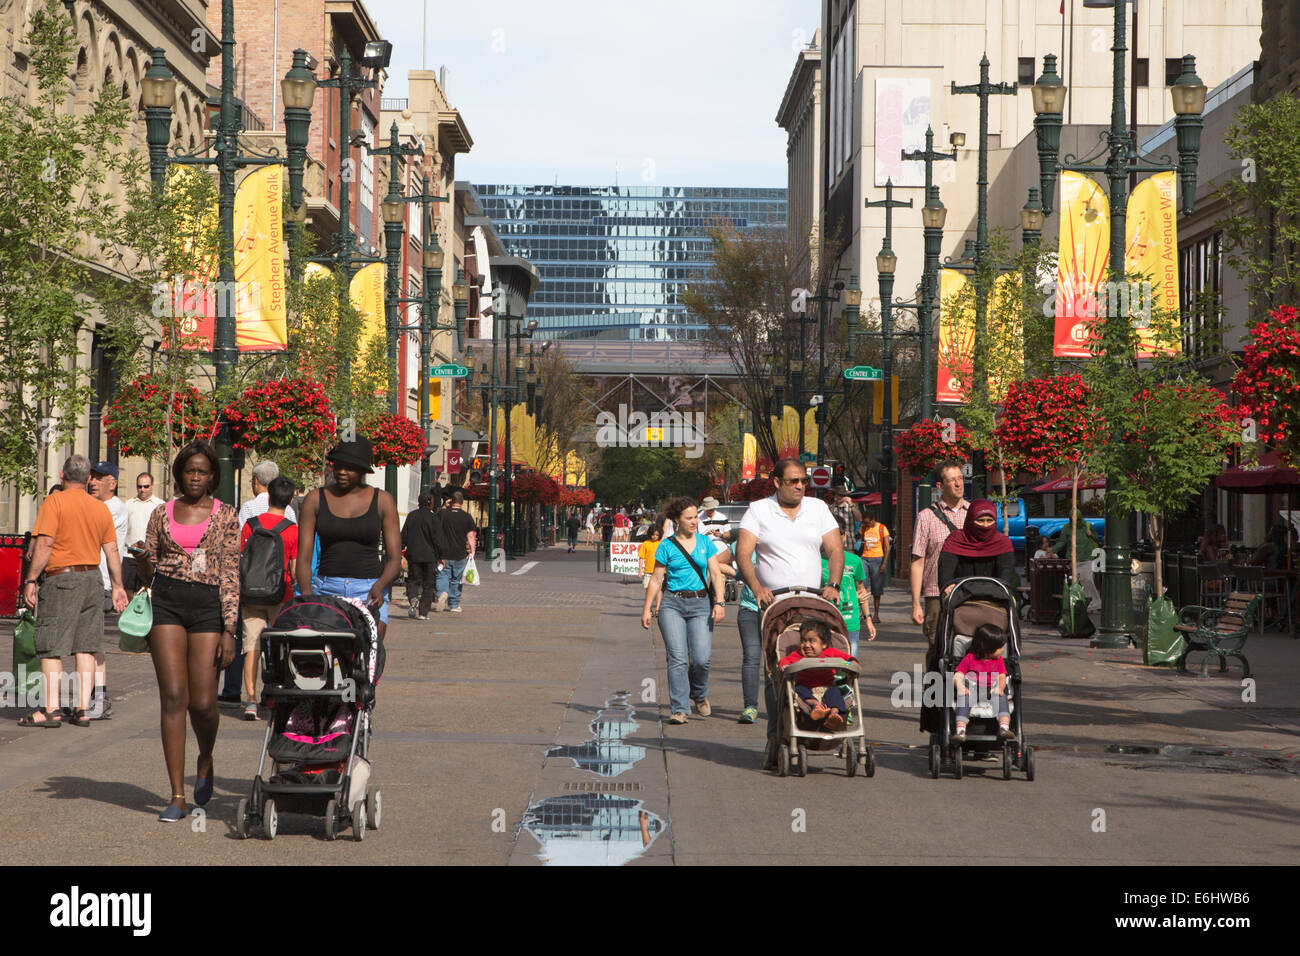 Stephen Avenue pedestrian mall - Stock Image